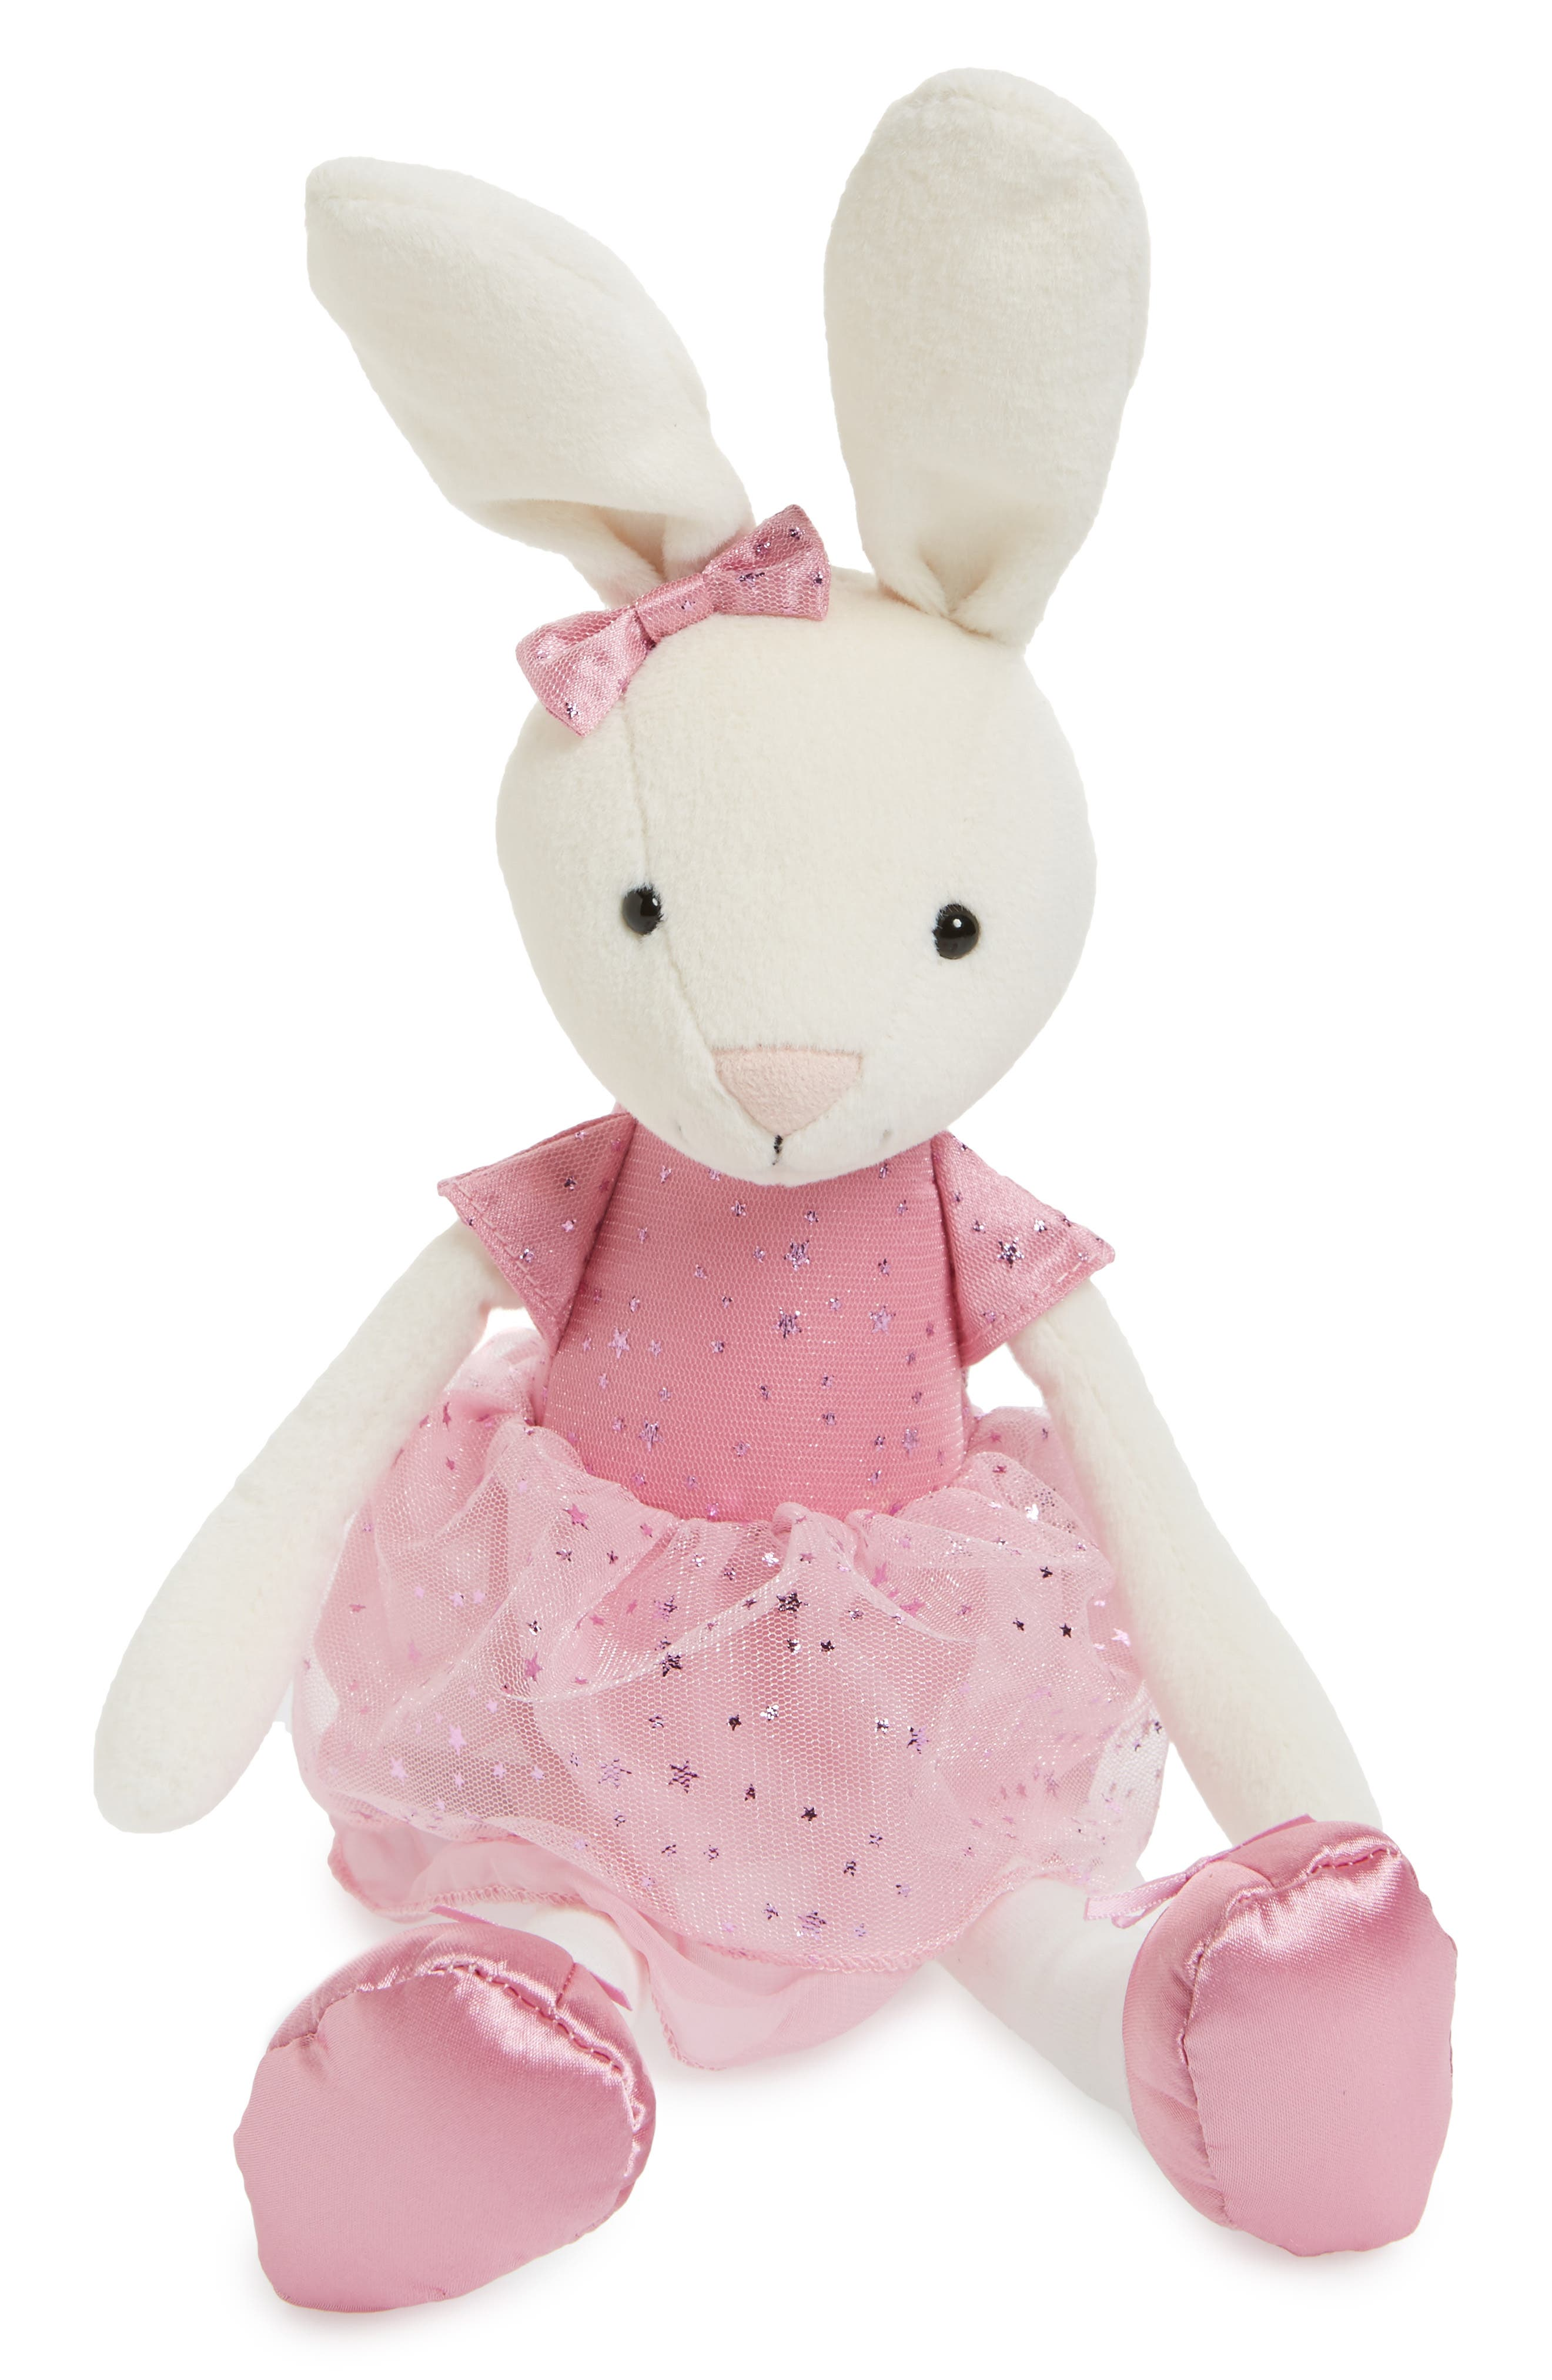 Party Bitsy Bunny Stuffed Animal,                         Main,                         color, Party